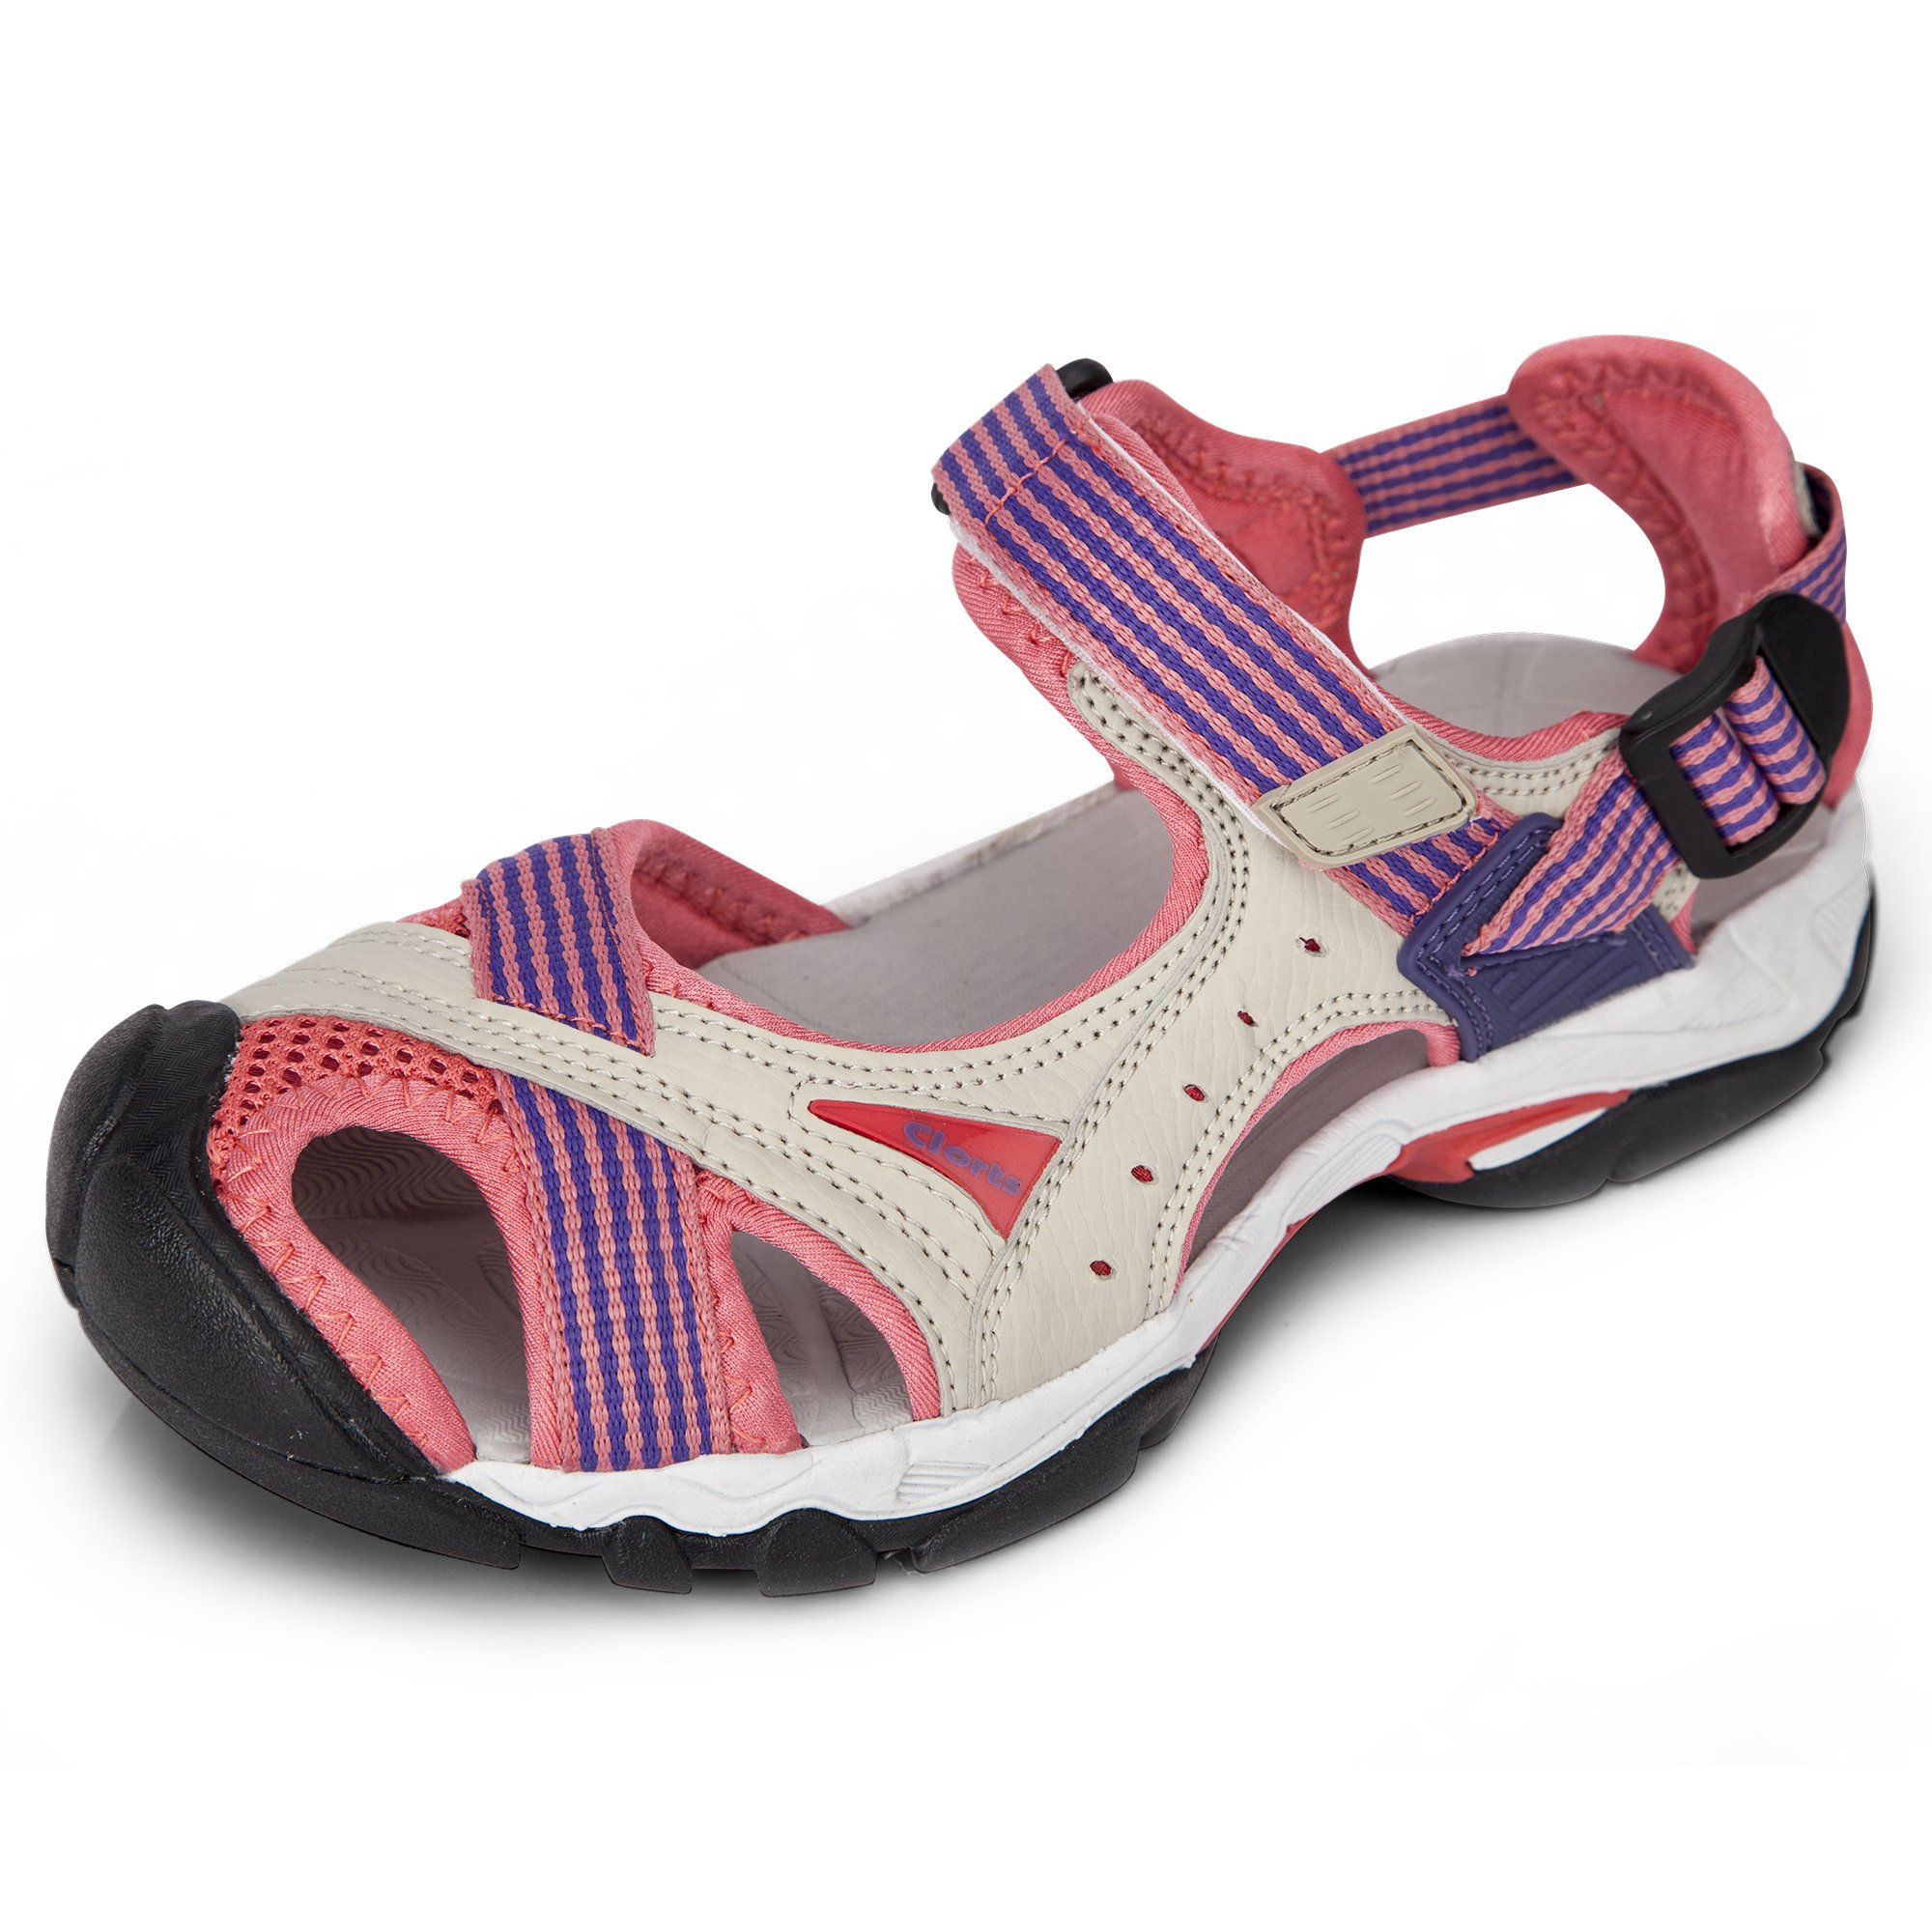 Clorts Women's Lightweight Athletic Sandal Outdoor Seaside Water Sneaker Pink SD-202B US7